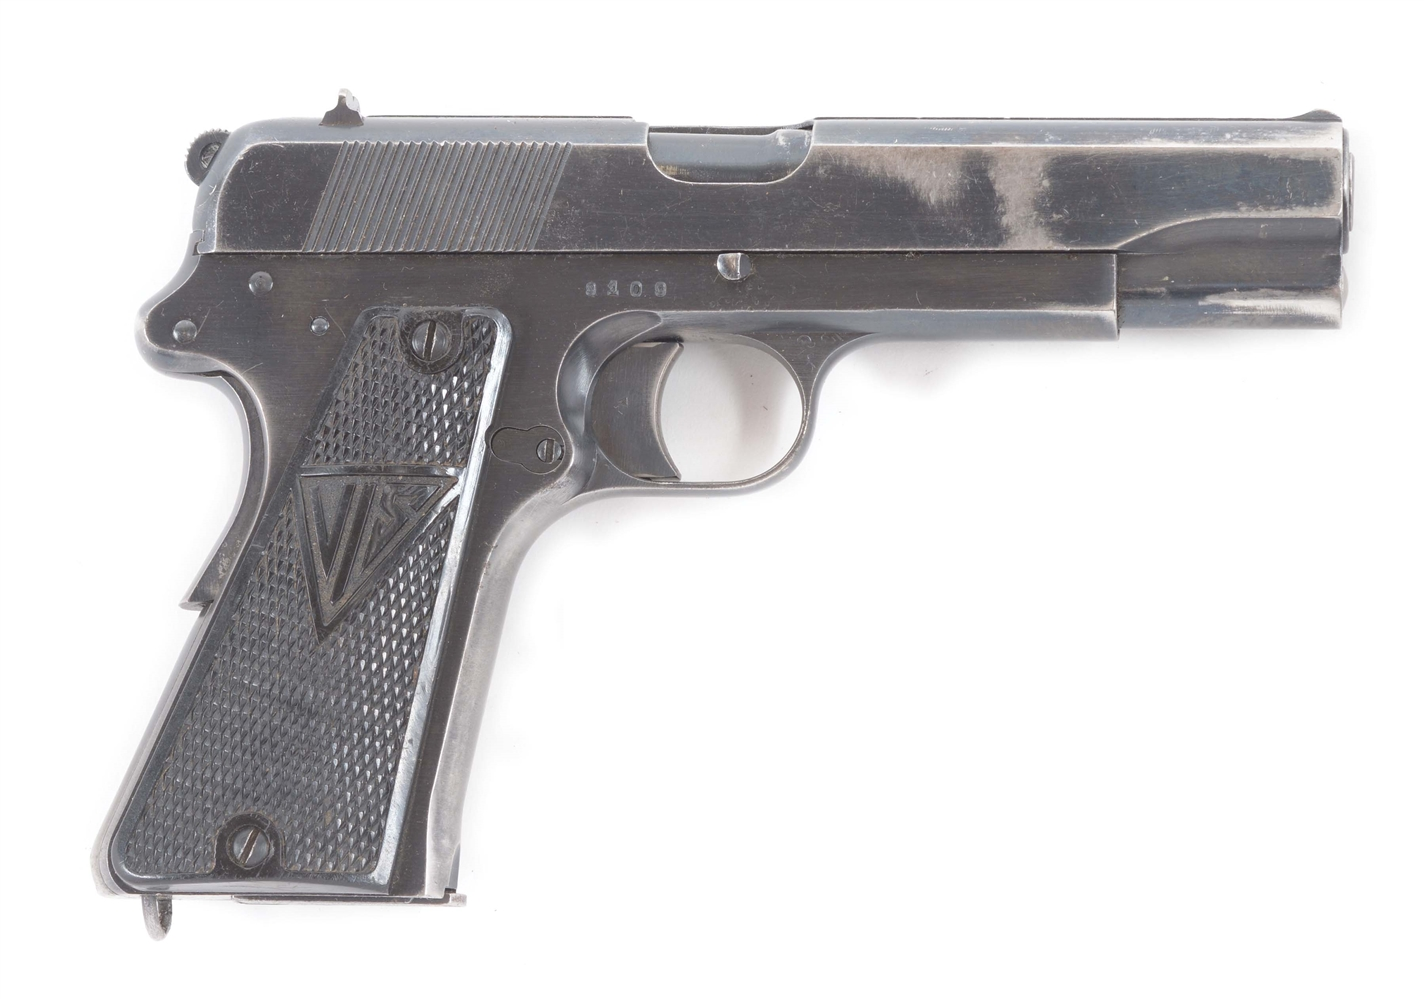 (C) HIGH POLISH GERMAN INSPECTED SLOTTED POLISH P-35 RADOM SEMI-AUTOMATIC PISTOL WITH HOLSTER.